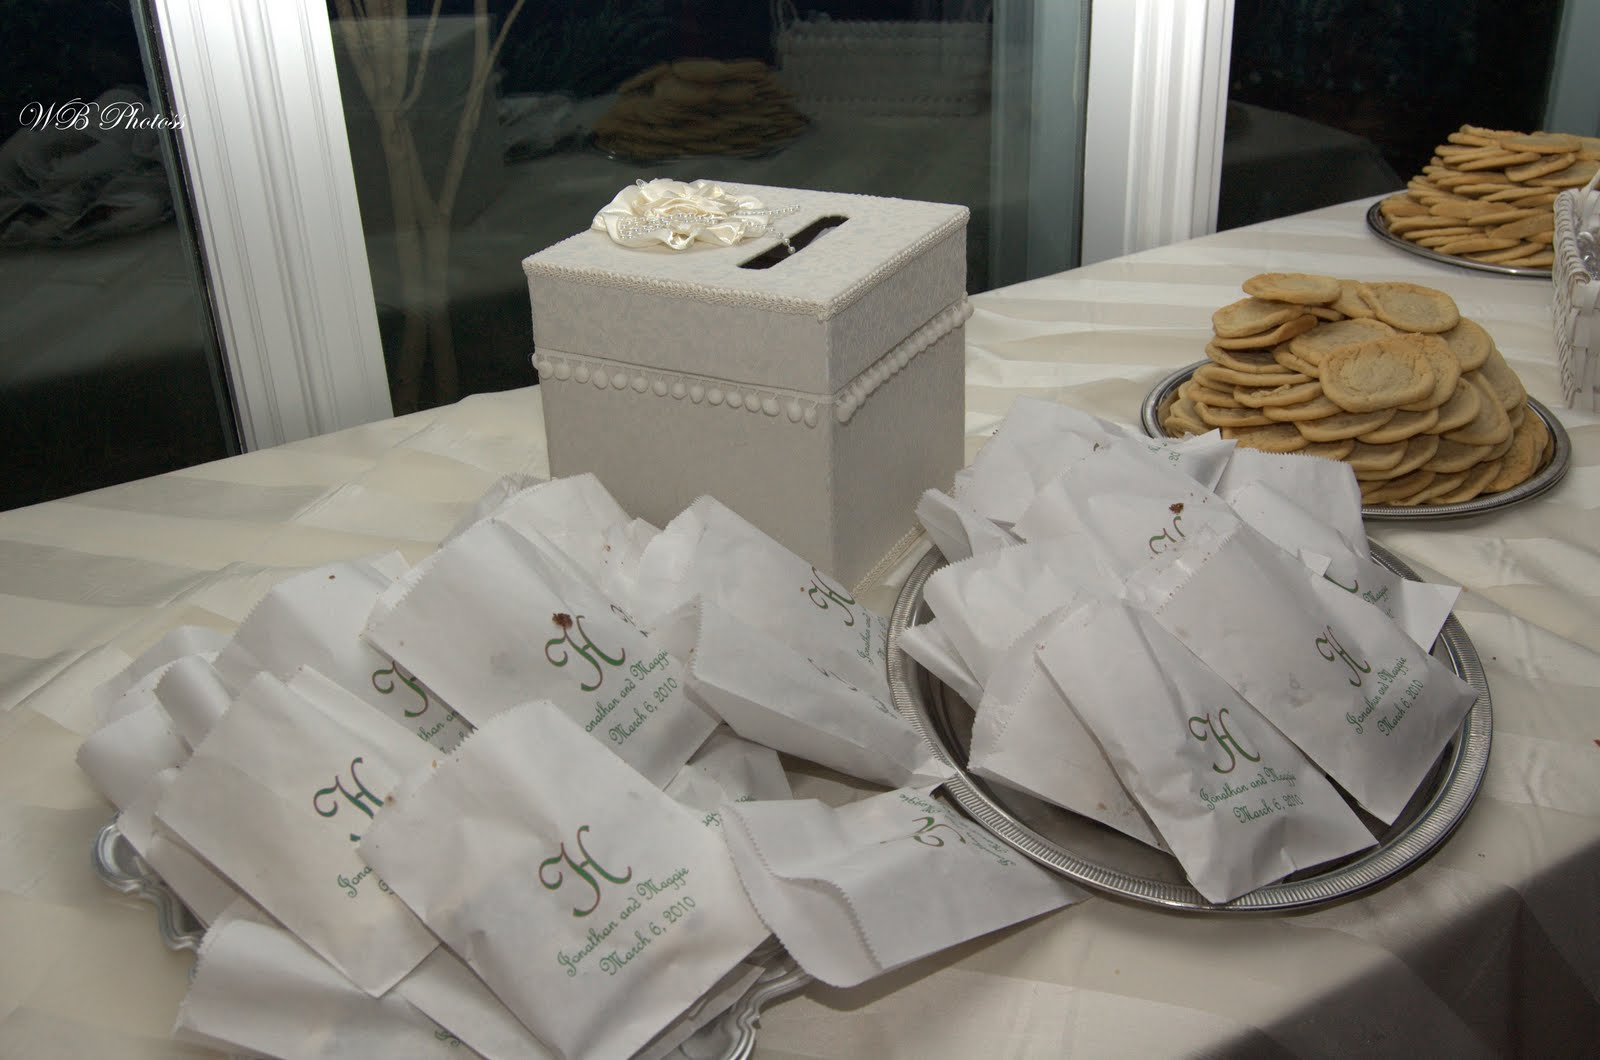 Here S An Old Trend That Is Making A Reearance The Wax Lined Cake Bags For Guests To Take Leftover Home At End Of Night